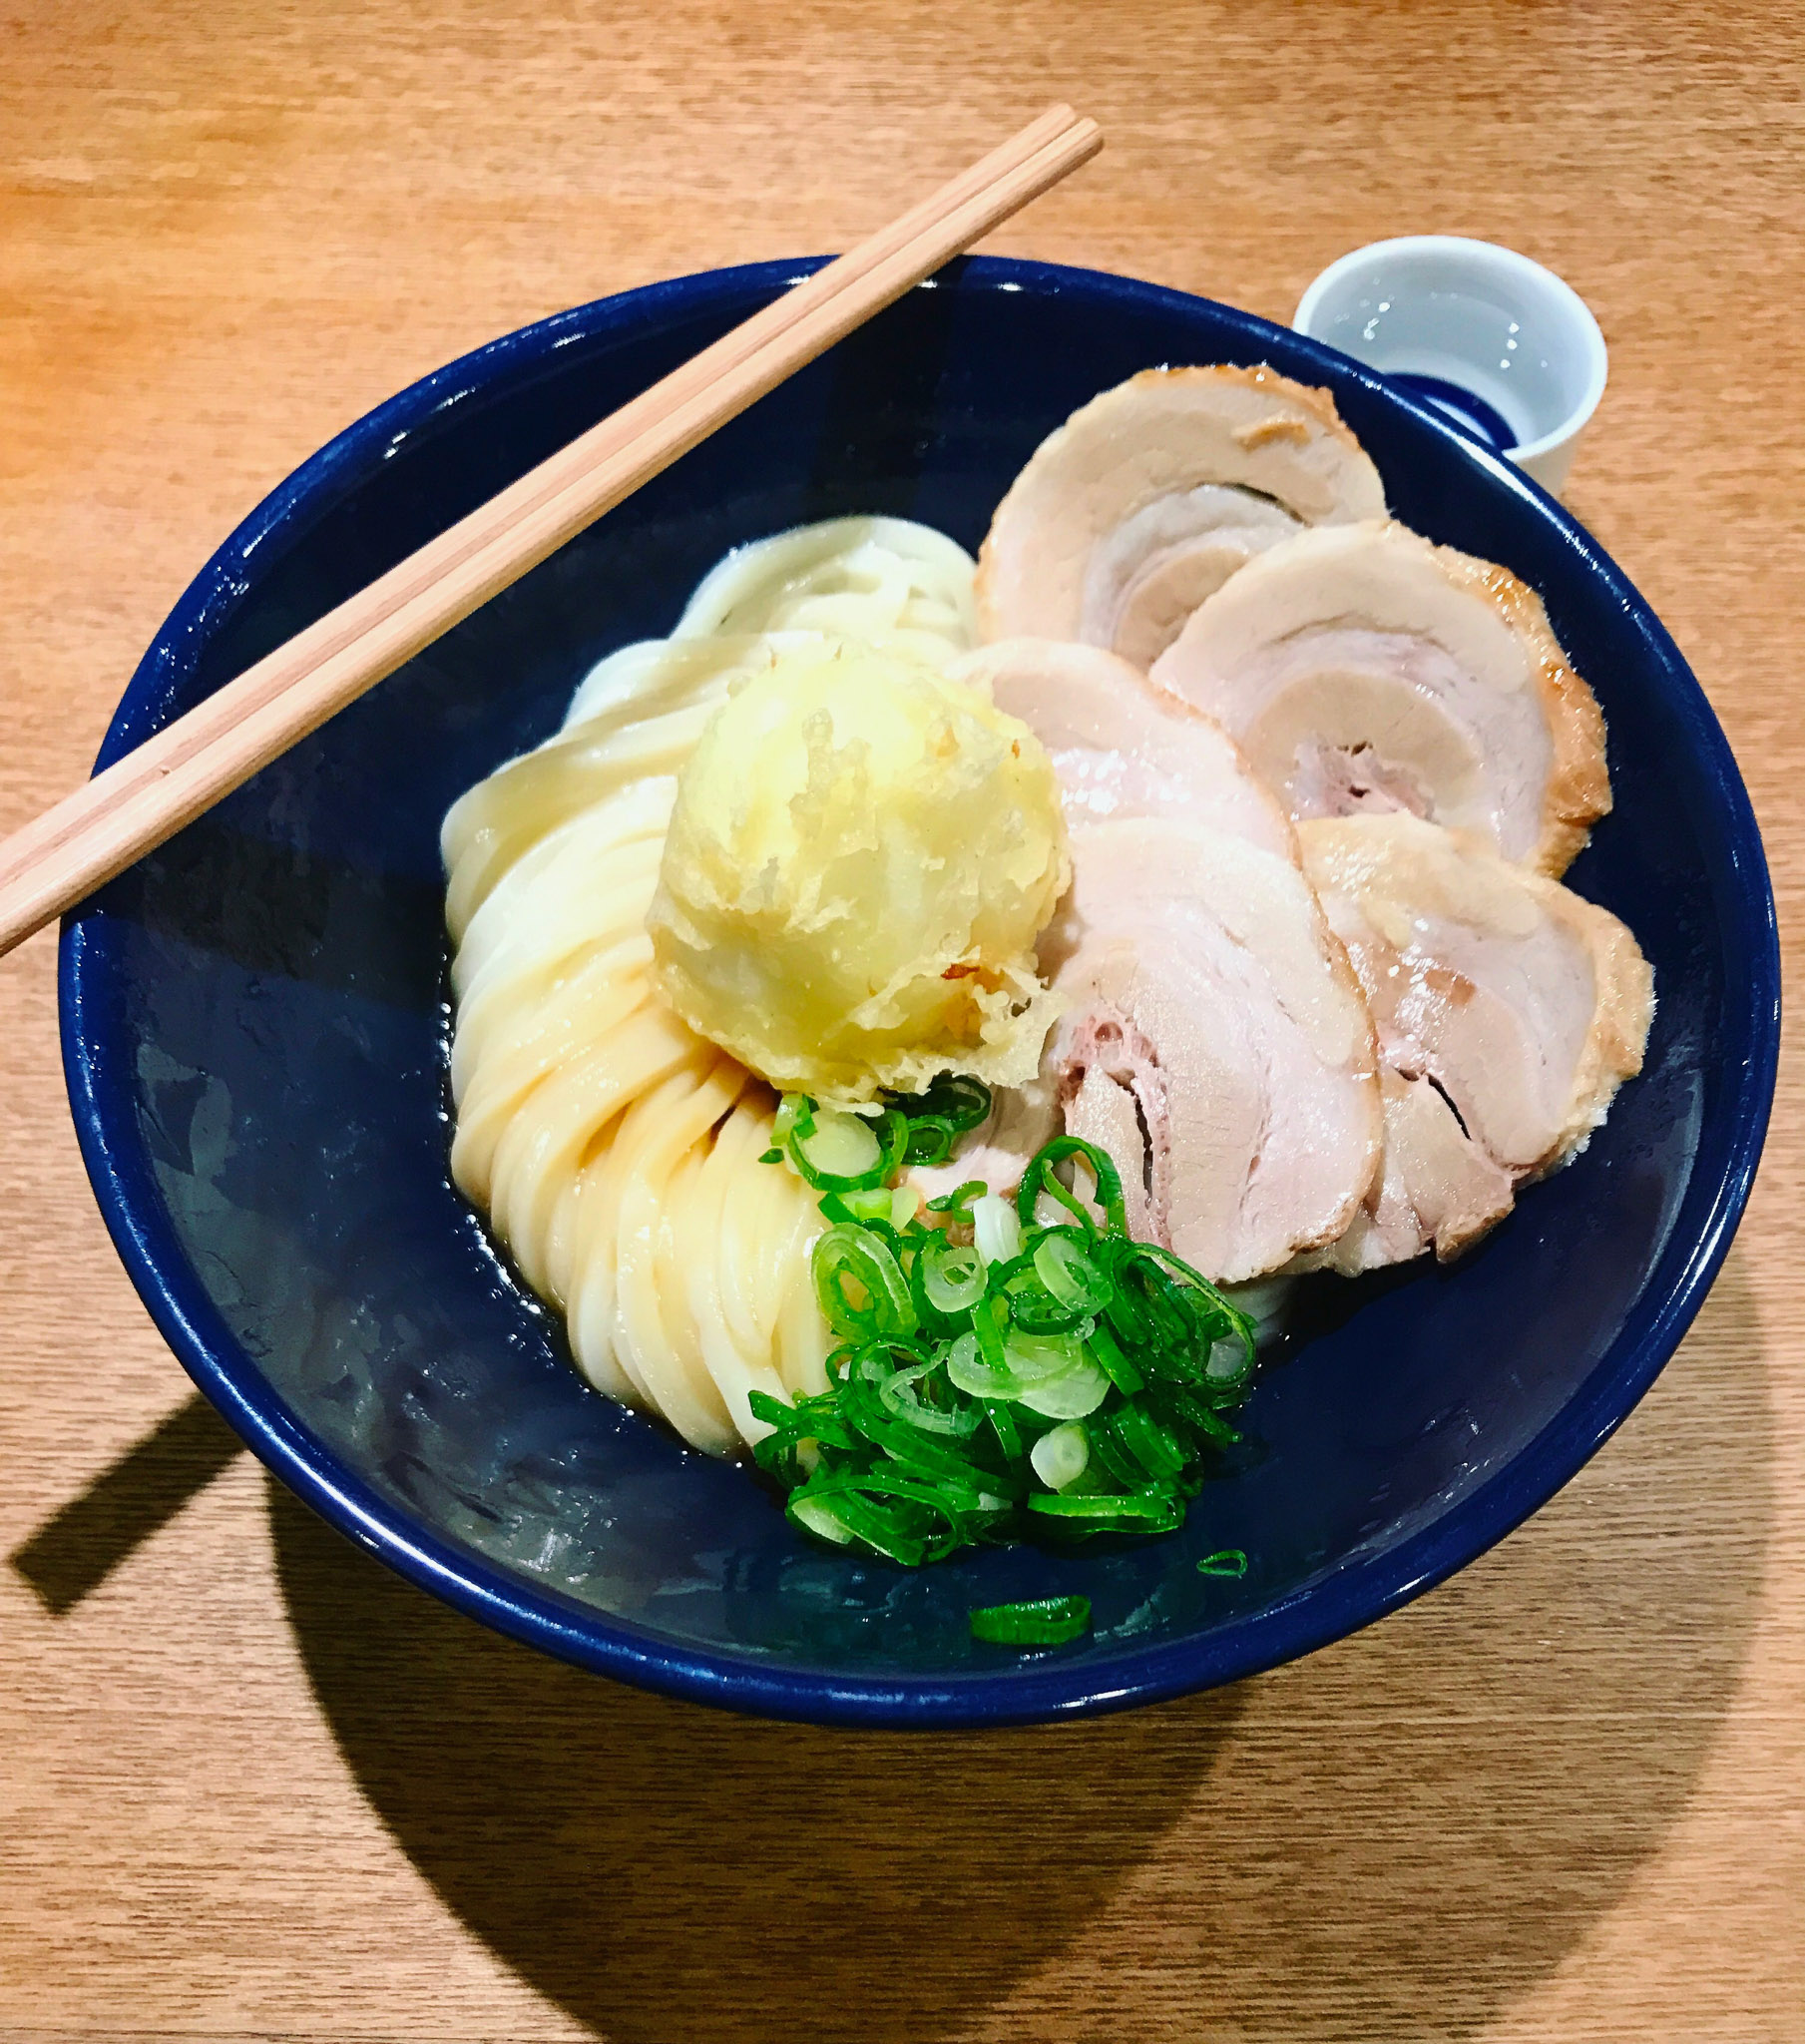 Udon has a thicker, softer wheat noodle than what you eat in ramen.